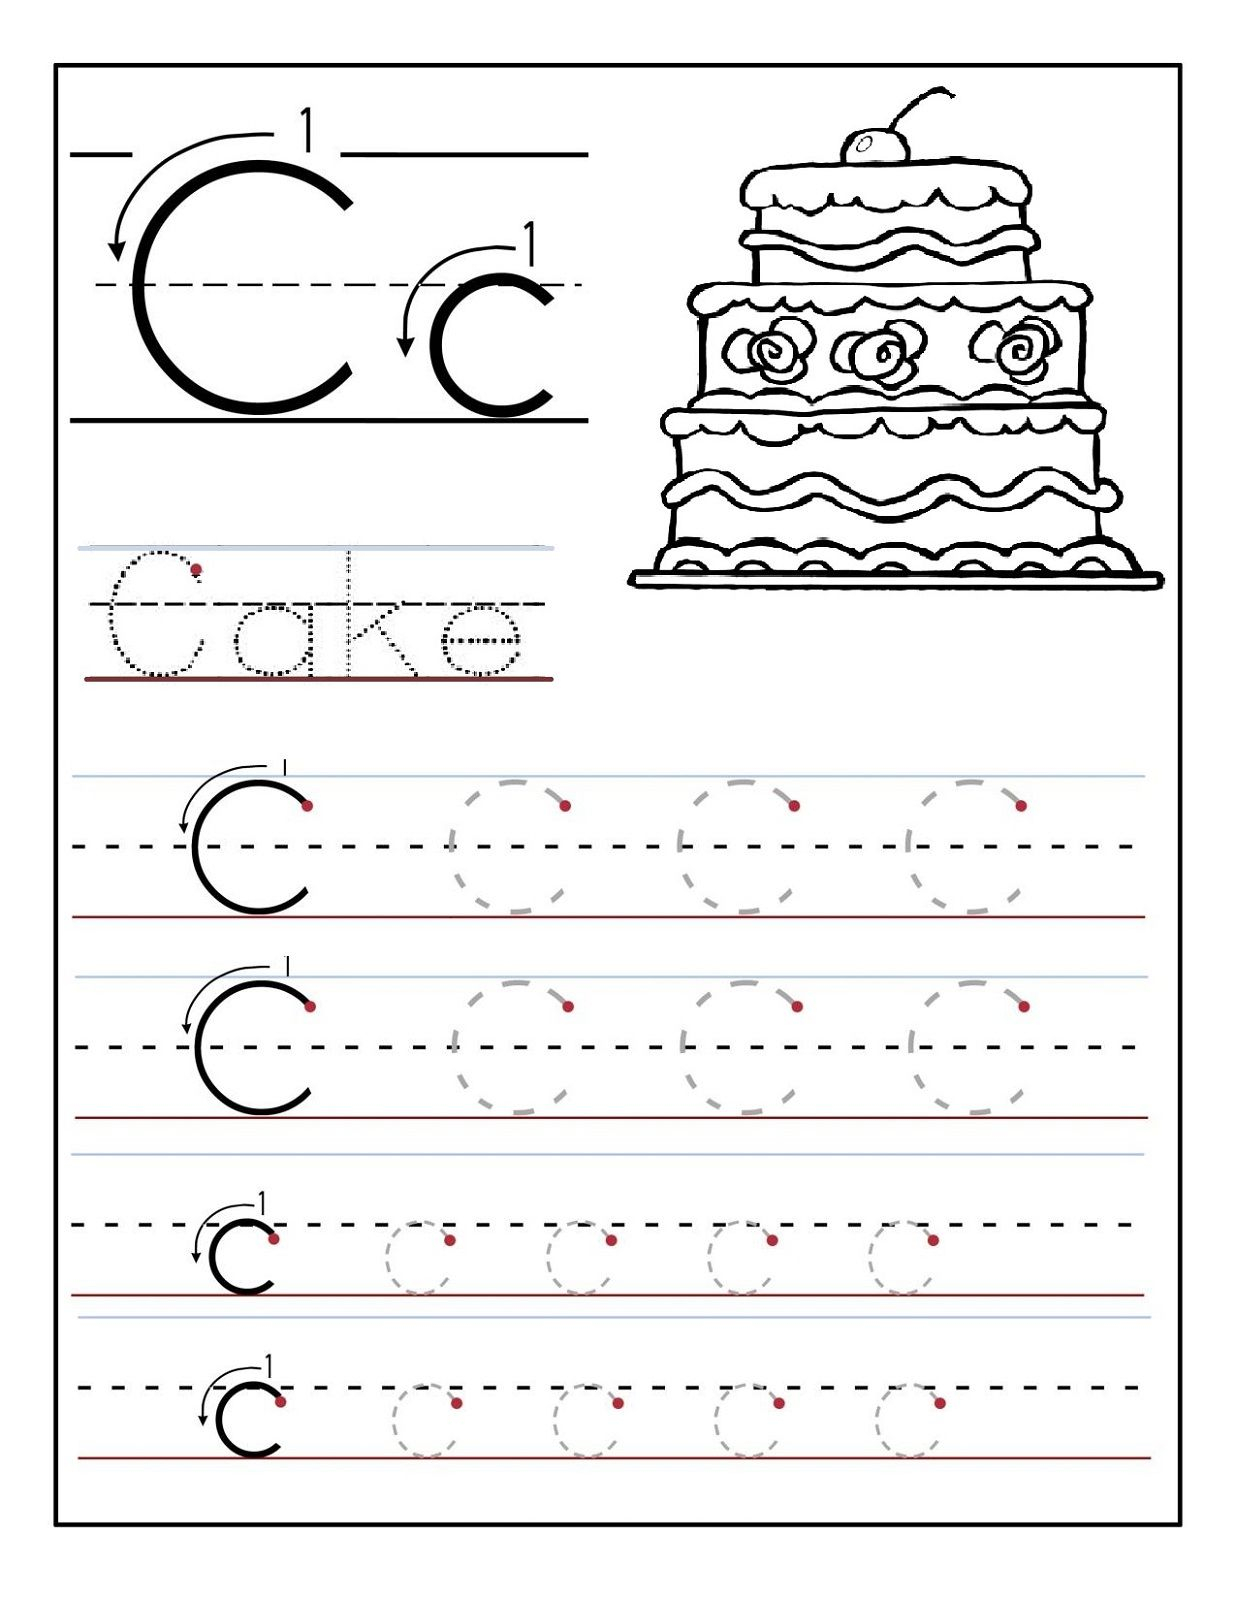 Trace The Letter C Worksheets | Preschool Letters, Alphabet